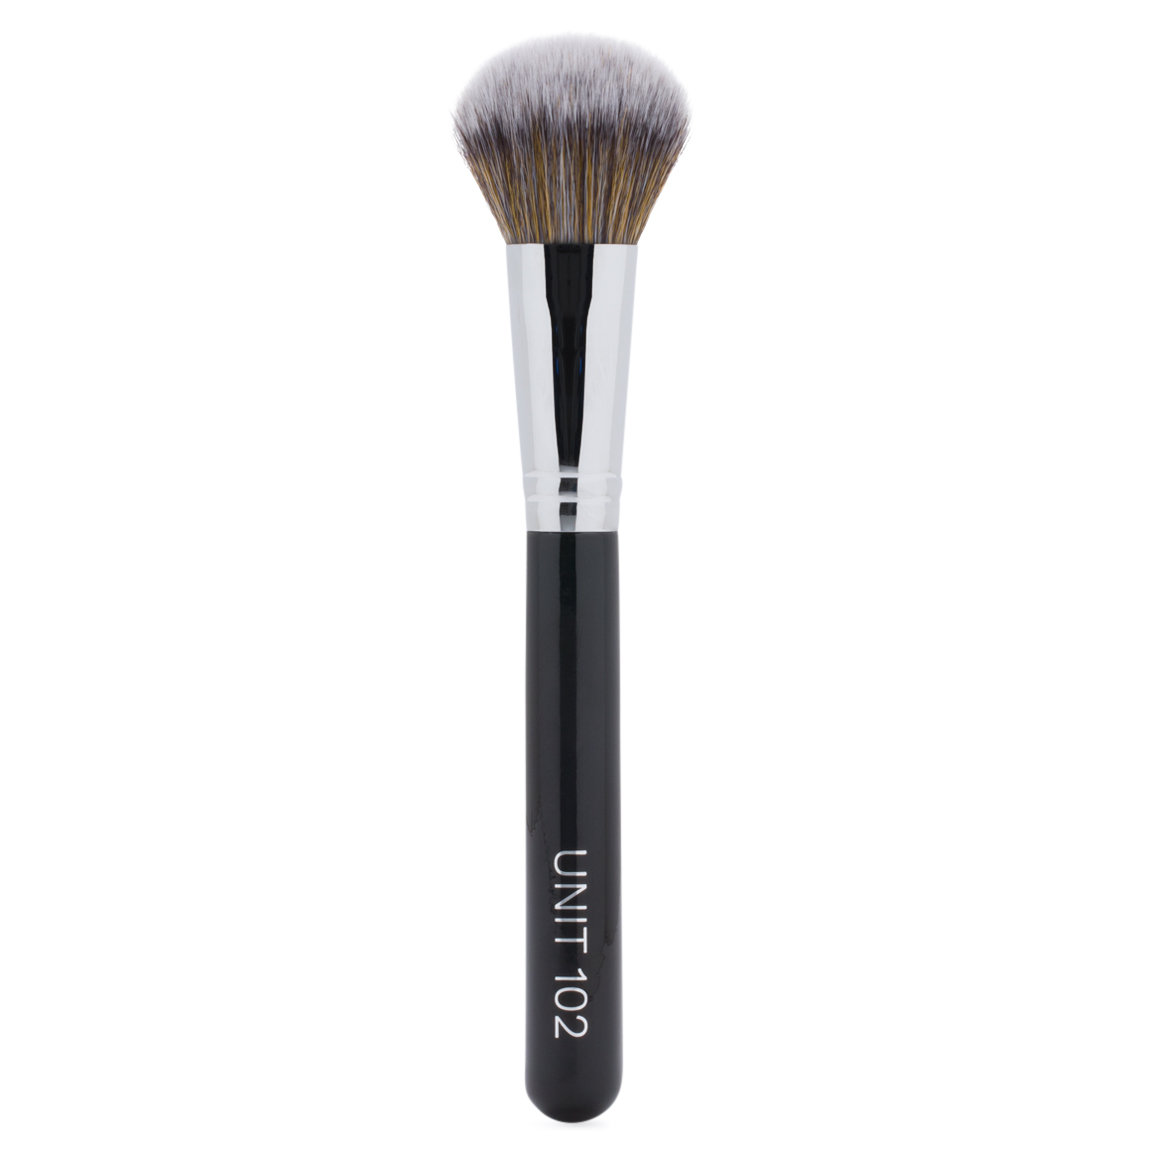 UNIT 102 Foundation Brush